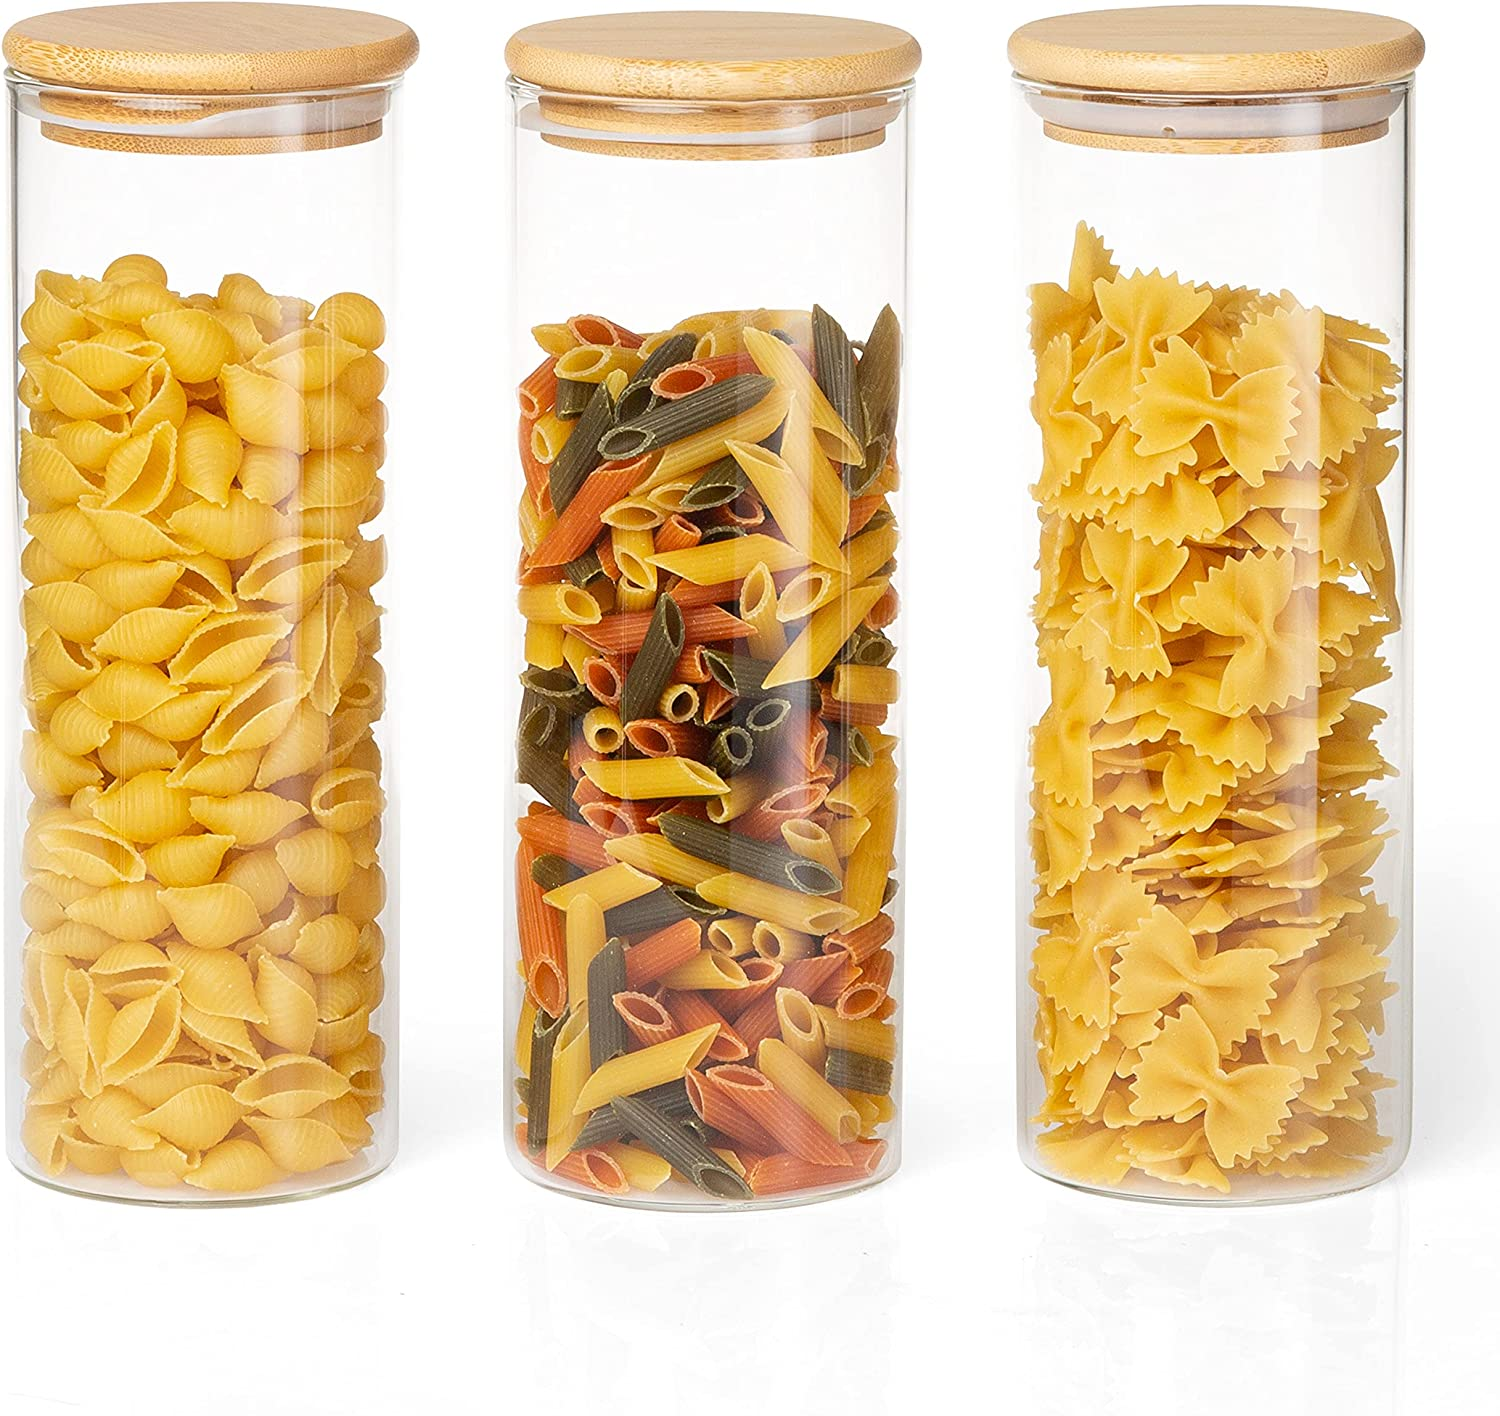 Crutello Glass Food Storage Containers with Bamboo Lids, 3 Pack - 32 Fluid oz Airtight Clear Kitchen Organization Canisters